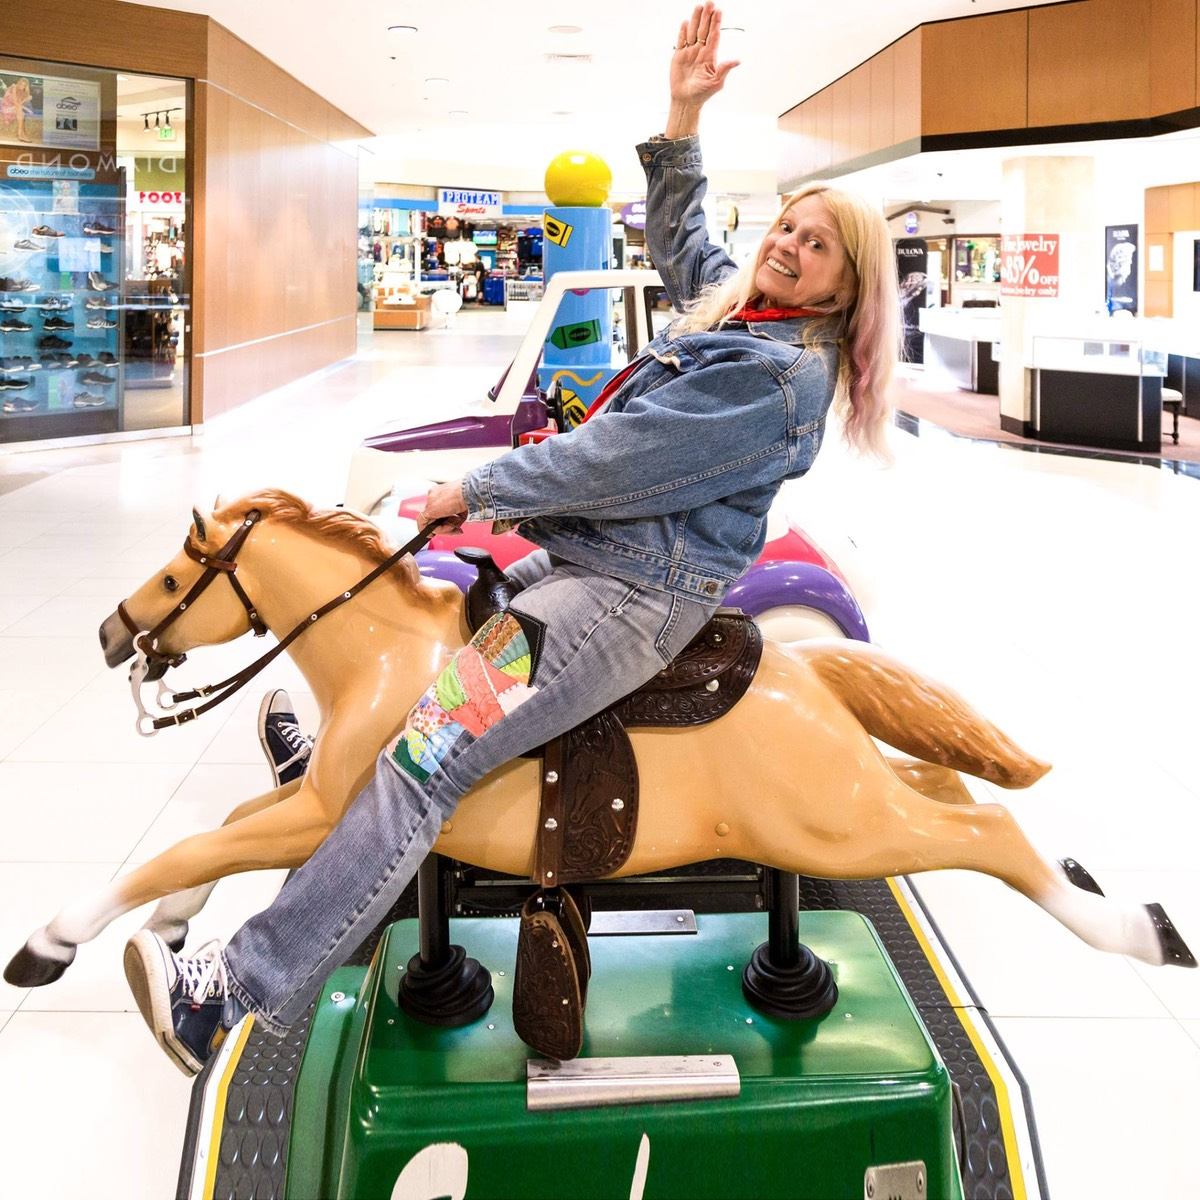 Vesta riding a dimestore horse in the mall.